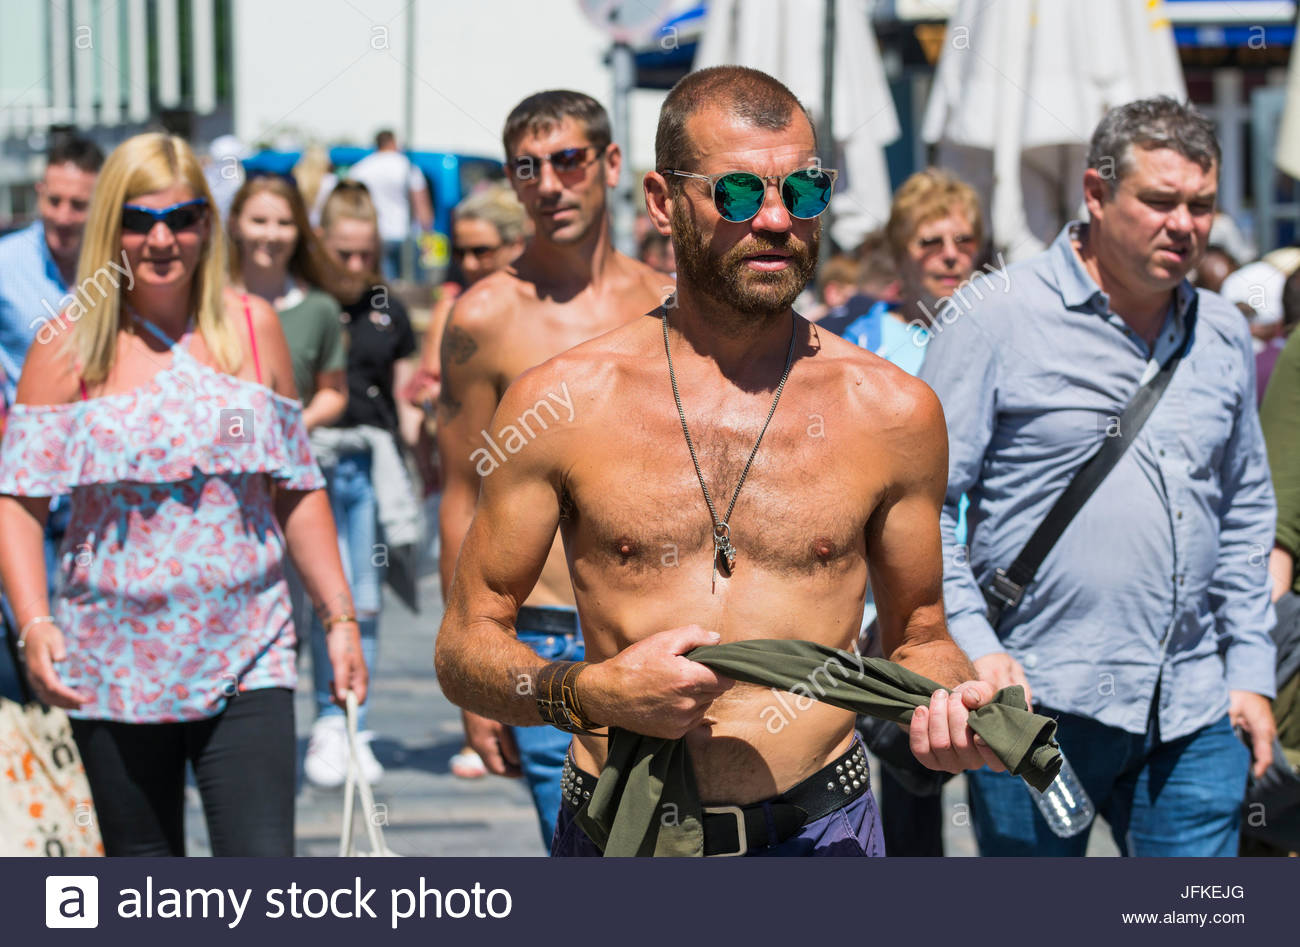 Shirtless muscly man possibly in his 30s wearing sunglasses walking through a busy street on a hot day in Summer - Stock Image